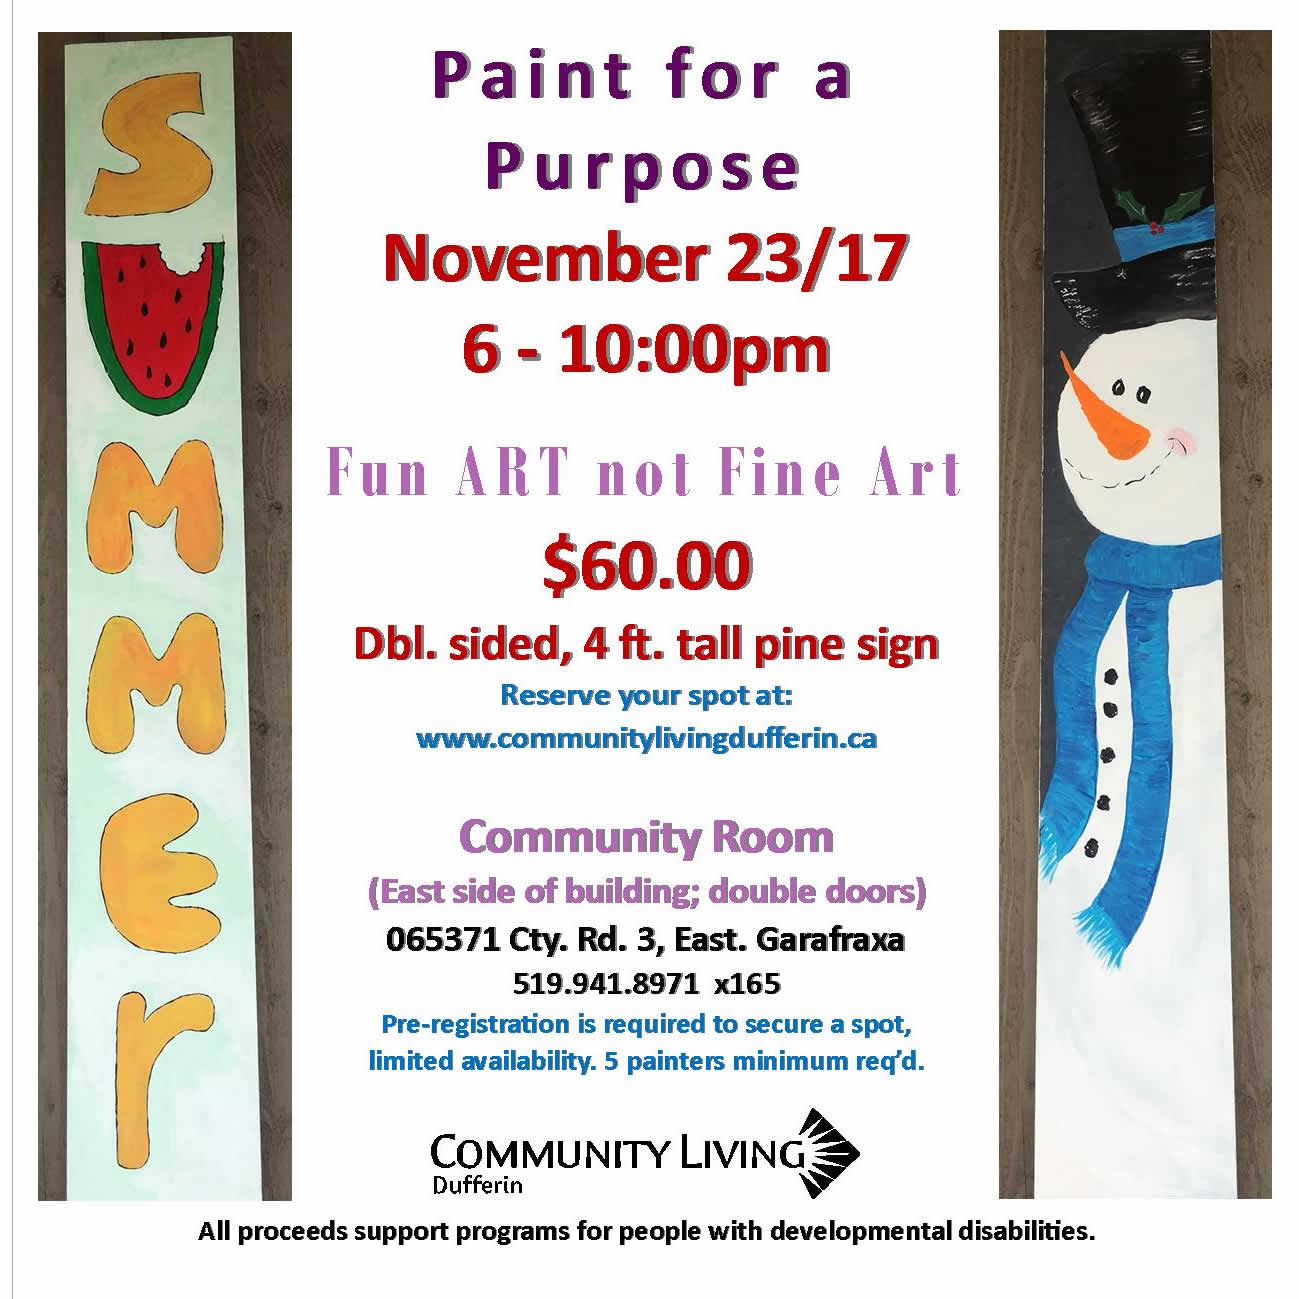 Paint for a purpose November 23/17- 4ft. double sided pine sign